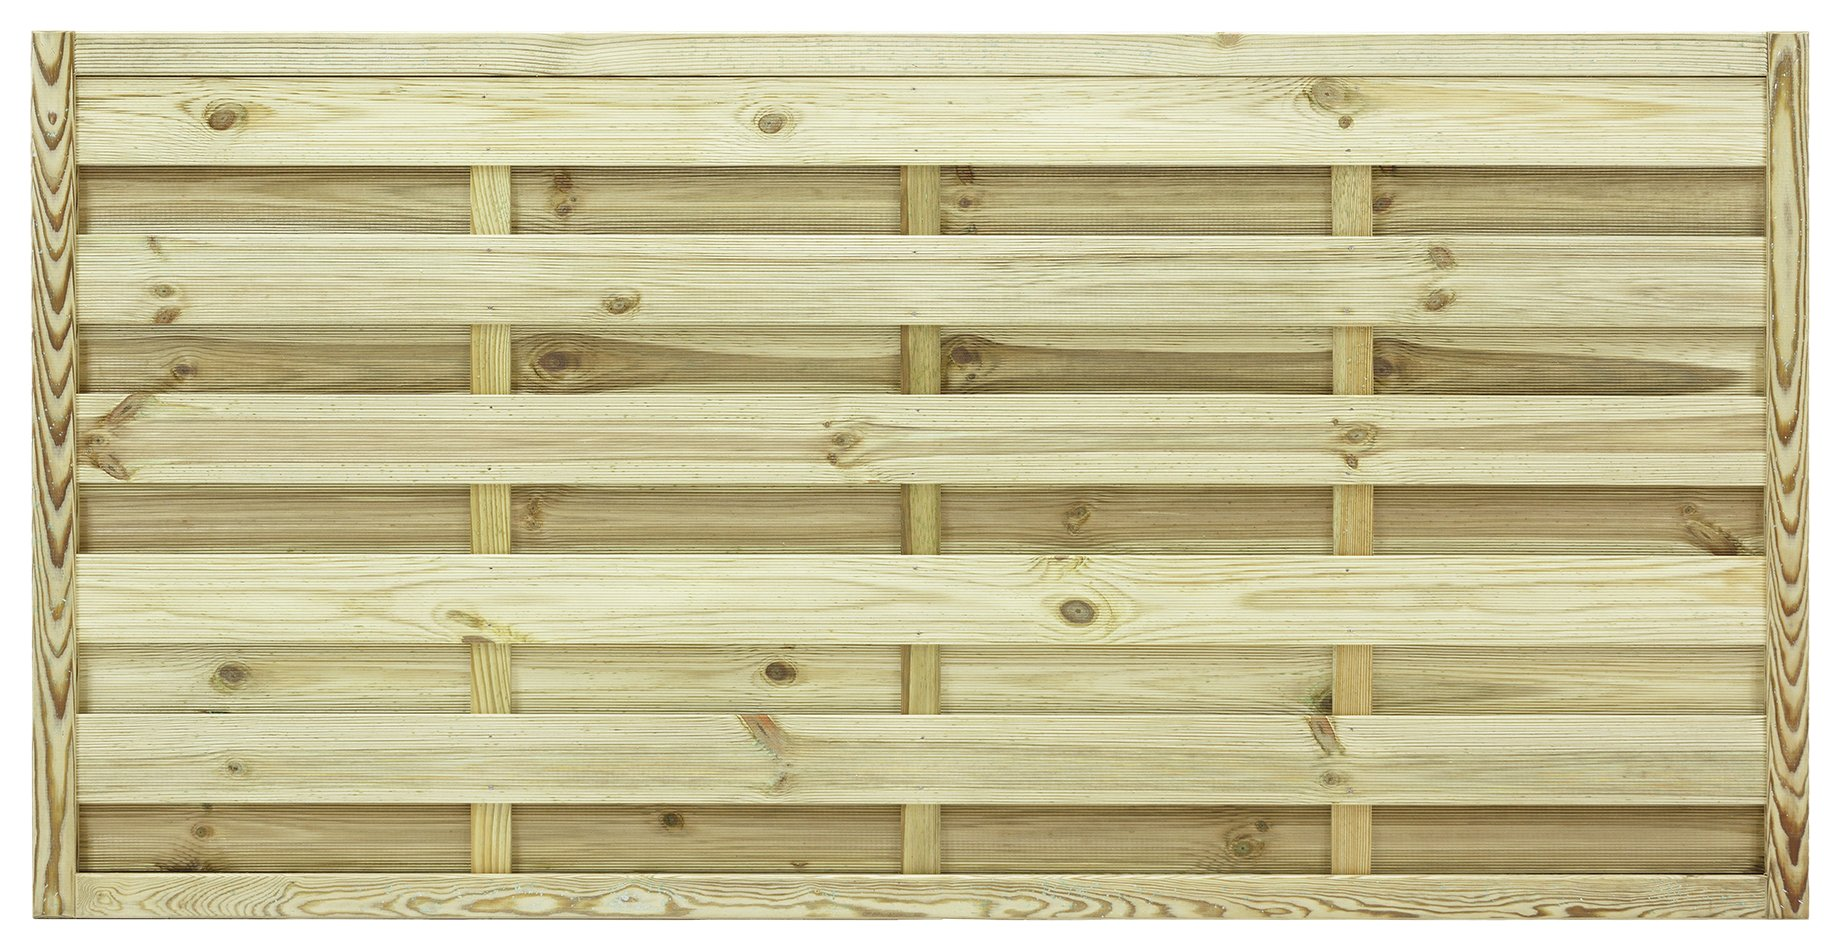 Grange 0.9m St Espirit Square Fence Panel - Pack of 5. lowest price